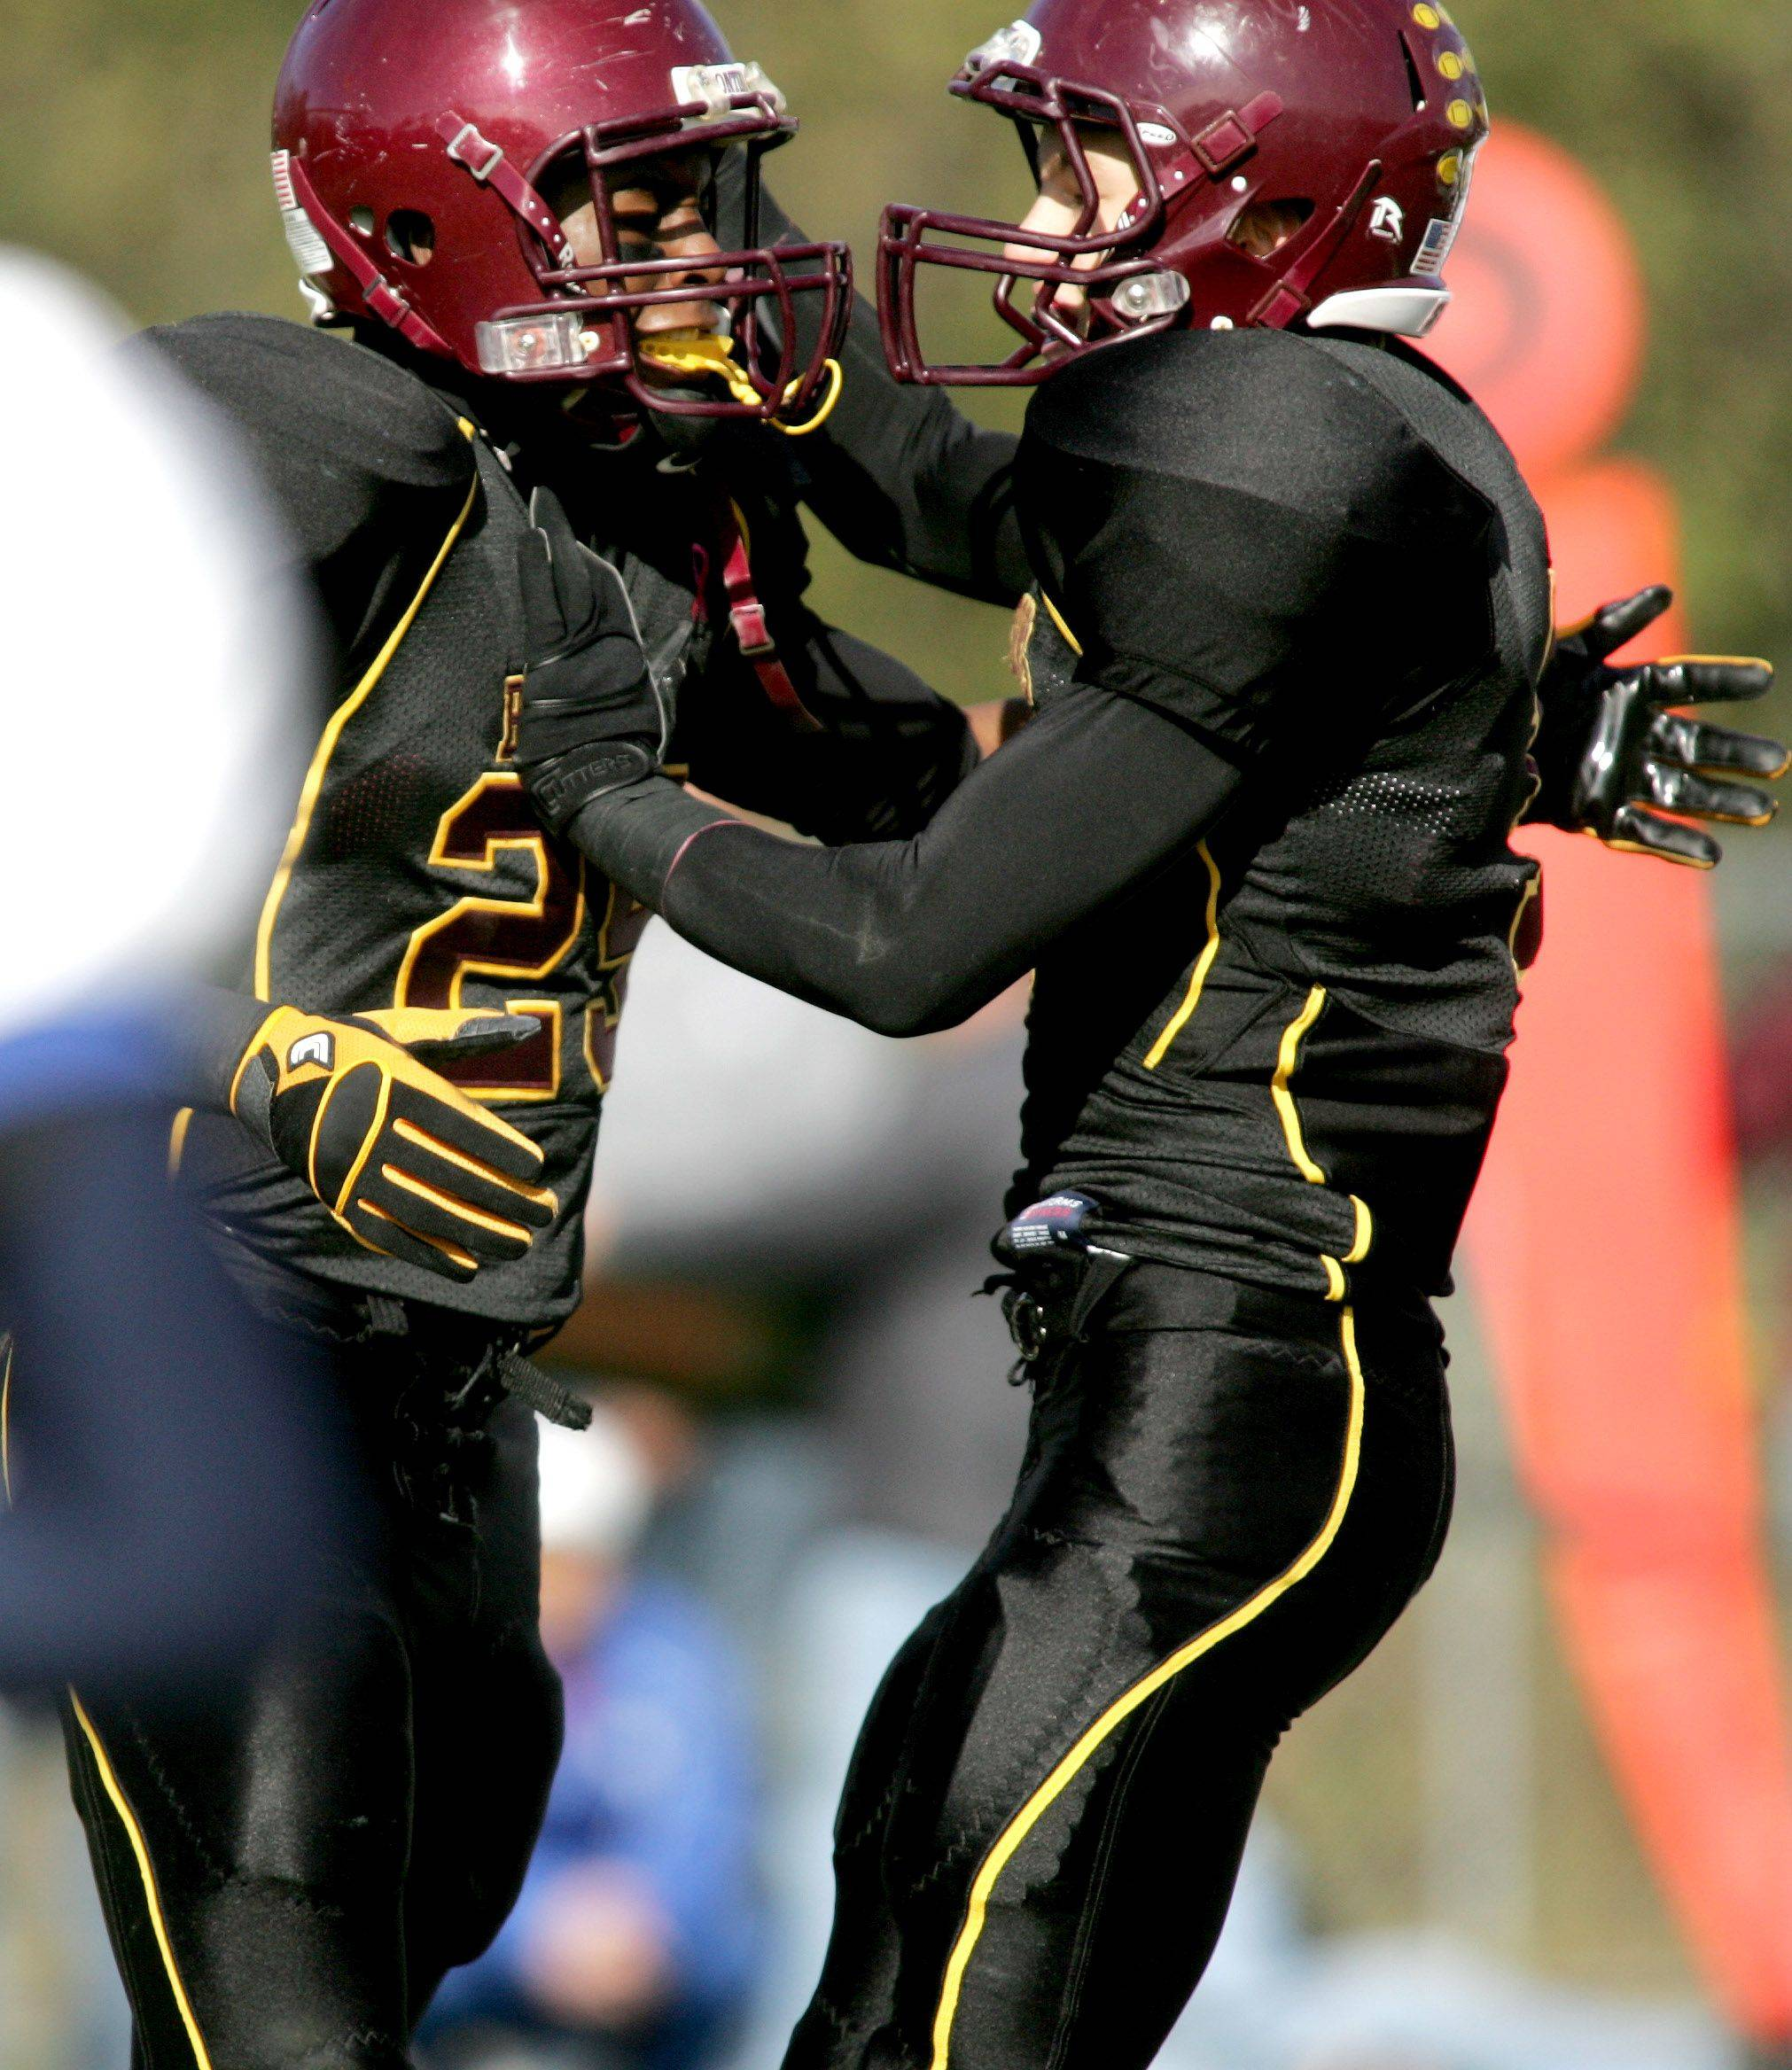 Anthony Taylor, left and Joseph Borsellino, right of Montini celebrate a touchdown .